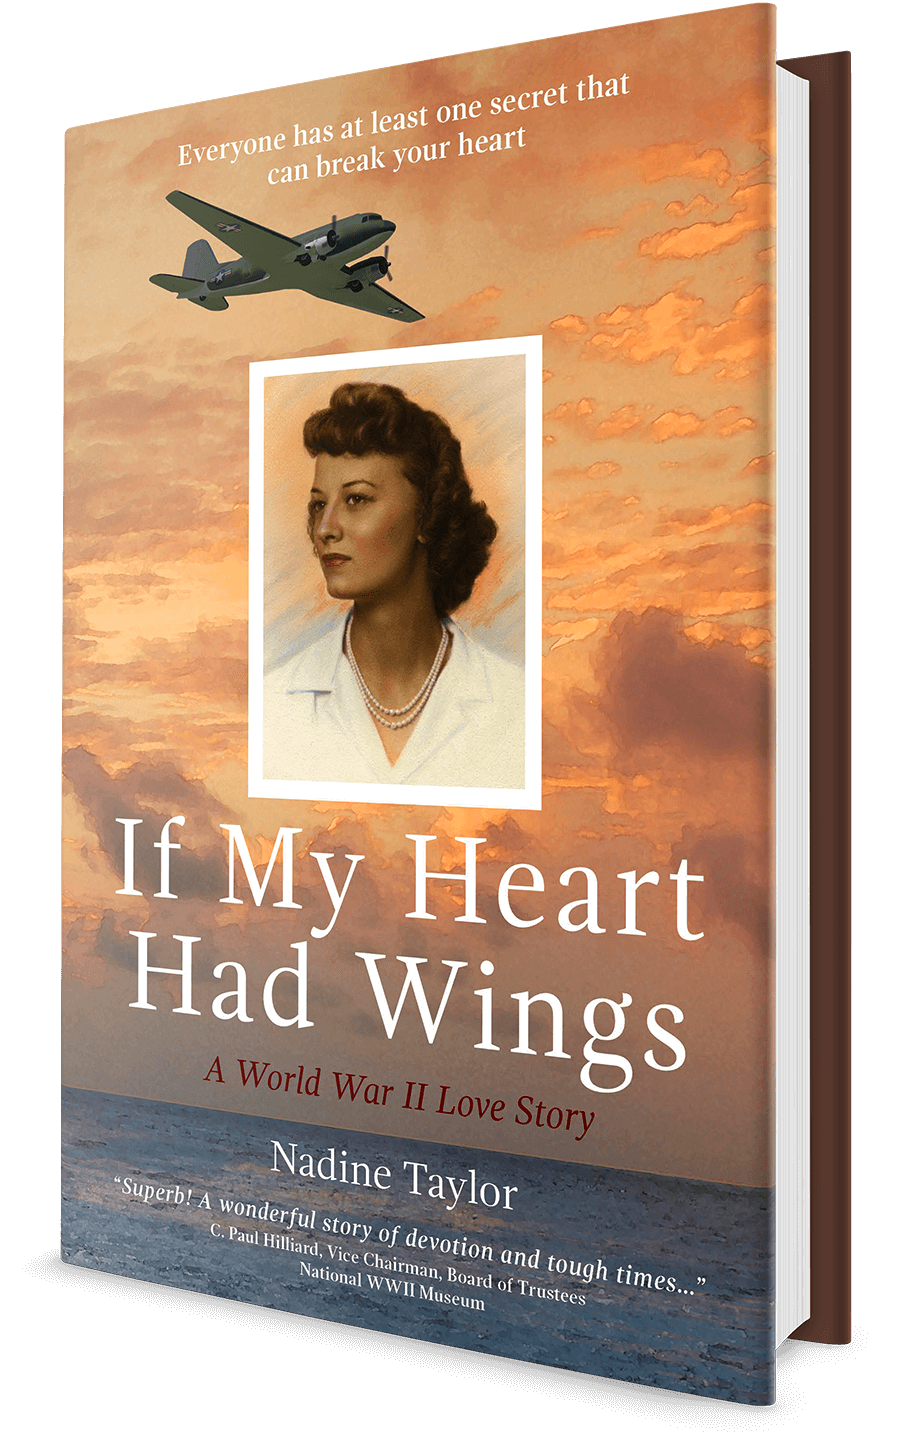 If My Heart Had Wings by Nadine Taylor